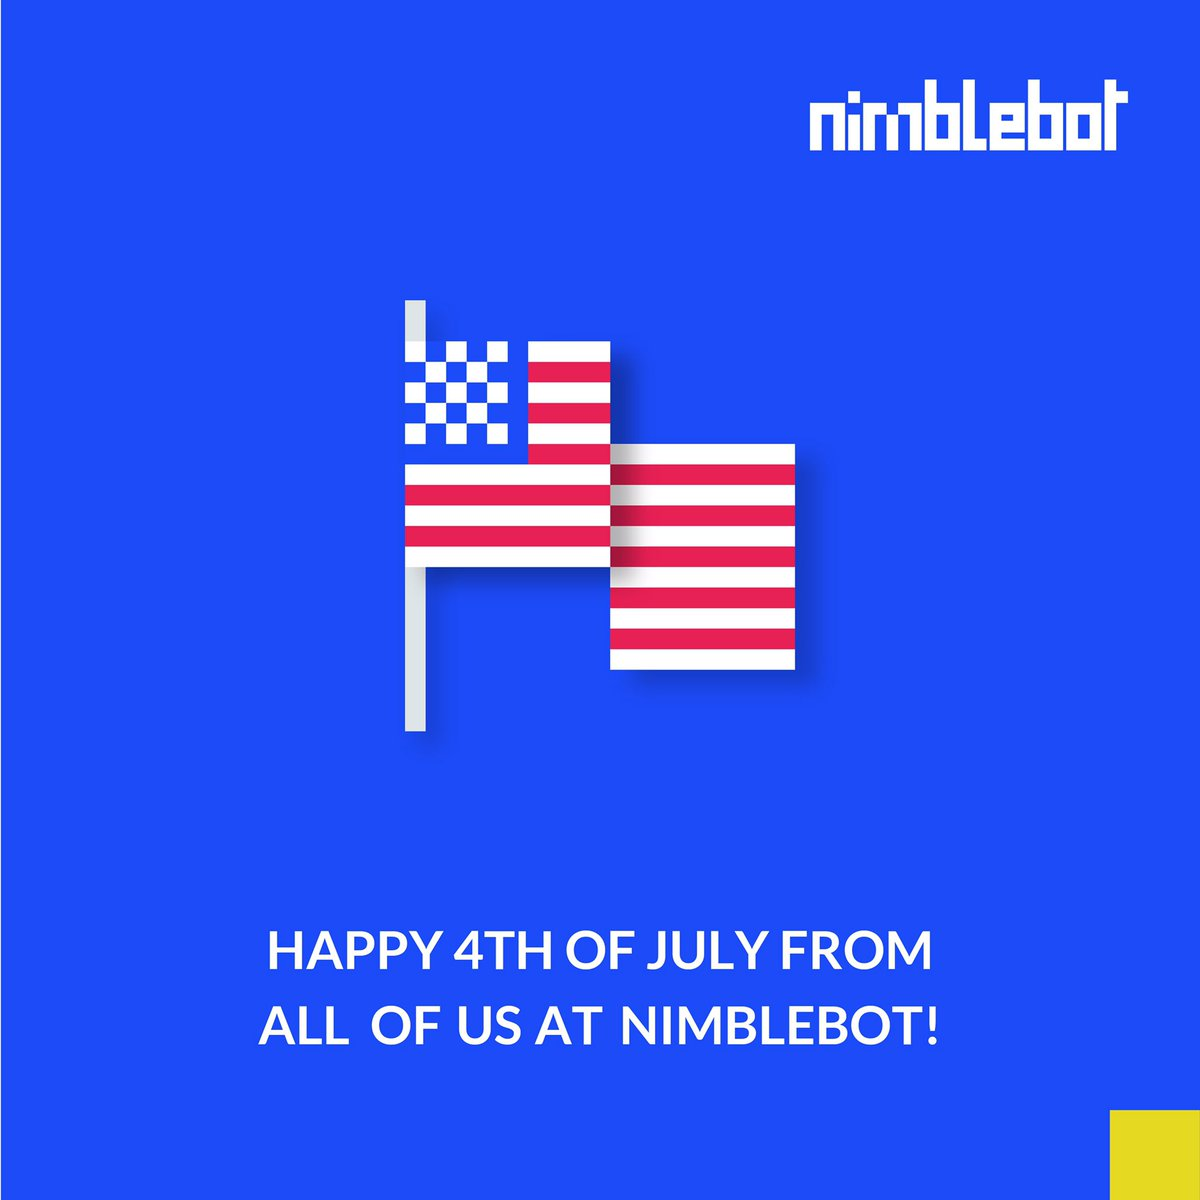 Happy Independence day from all of us at Nimblebot. We hope you have a wonderful 4th!  #independenceday #4thofjuly #digitalagency #design #animation #softwaredevelopment #digitalagencyusa #designinspiration #animation #graphicdesignerpic.twitter.com/Ongjr4rYZK